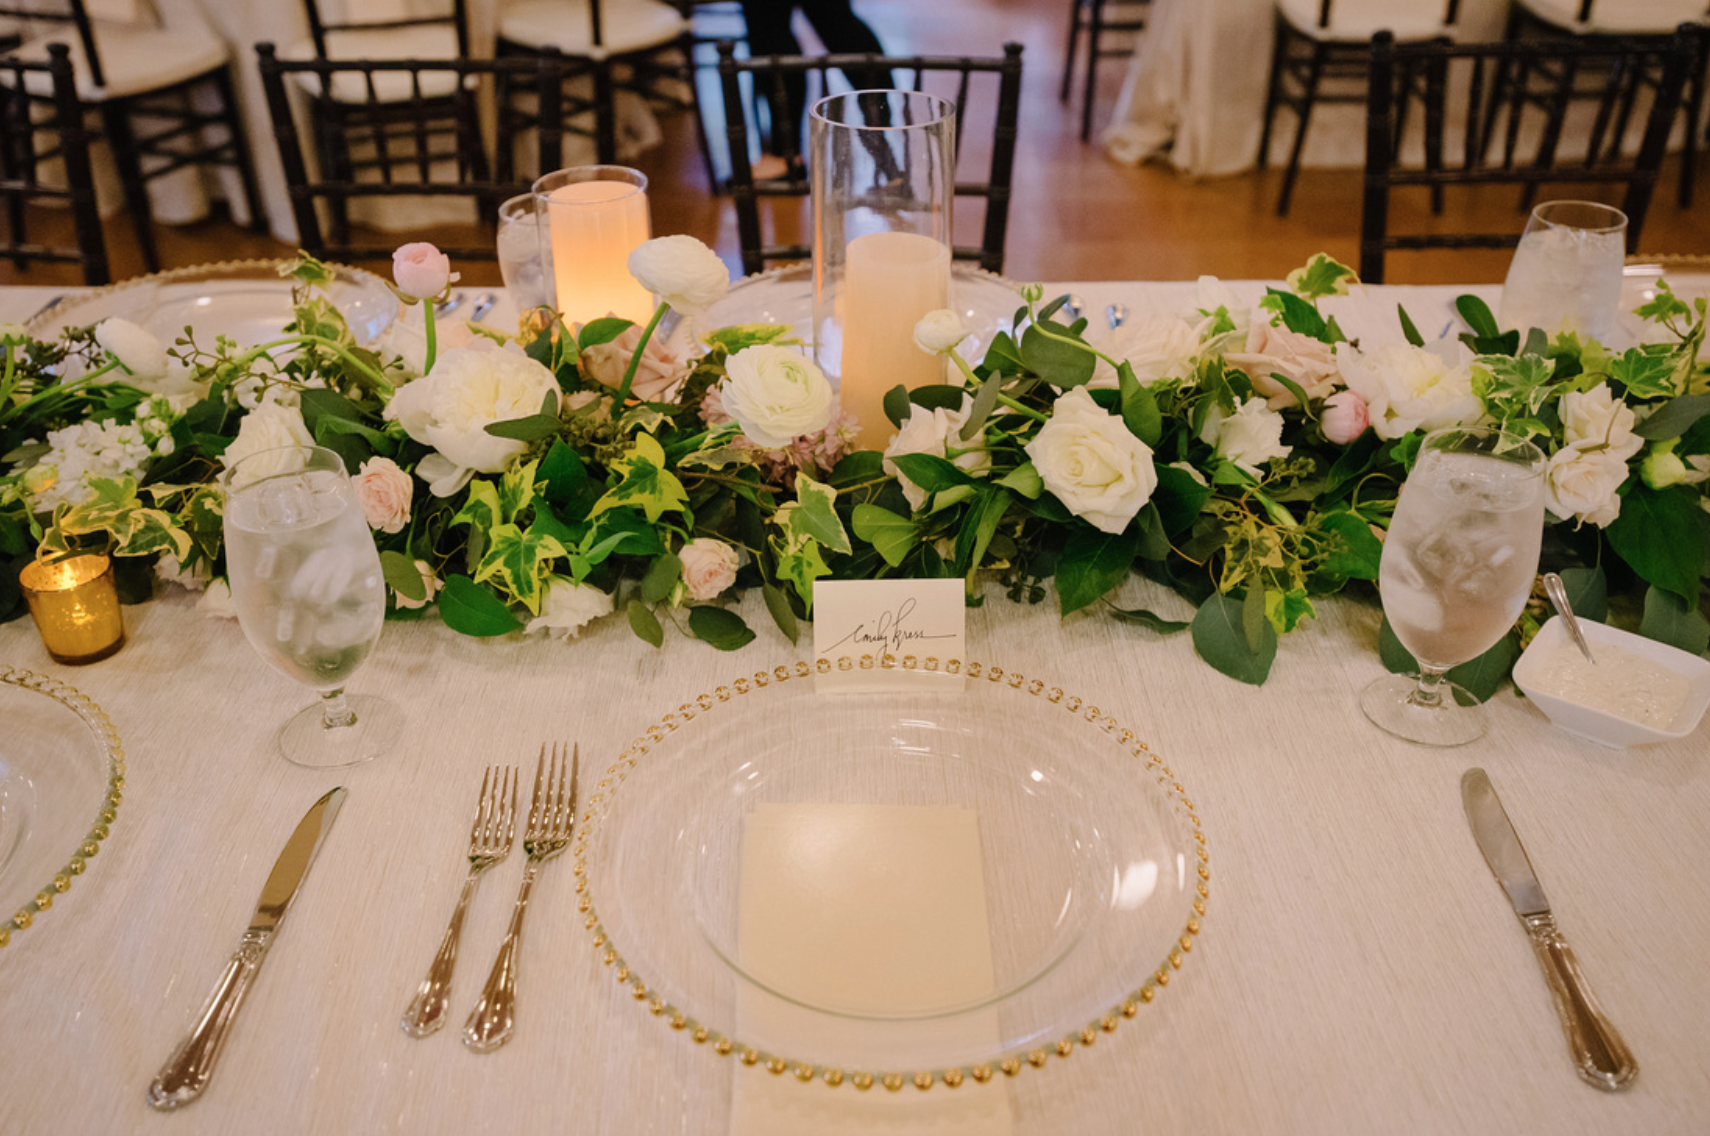 Floral garland is the focus on this gold toned head table.